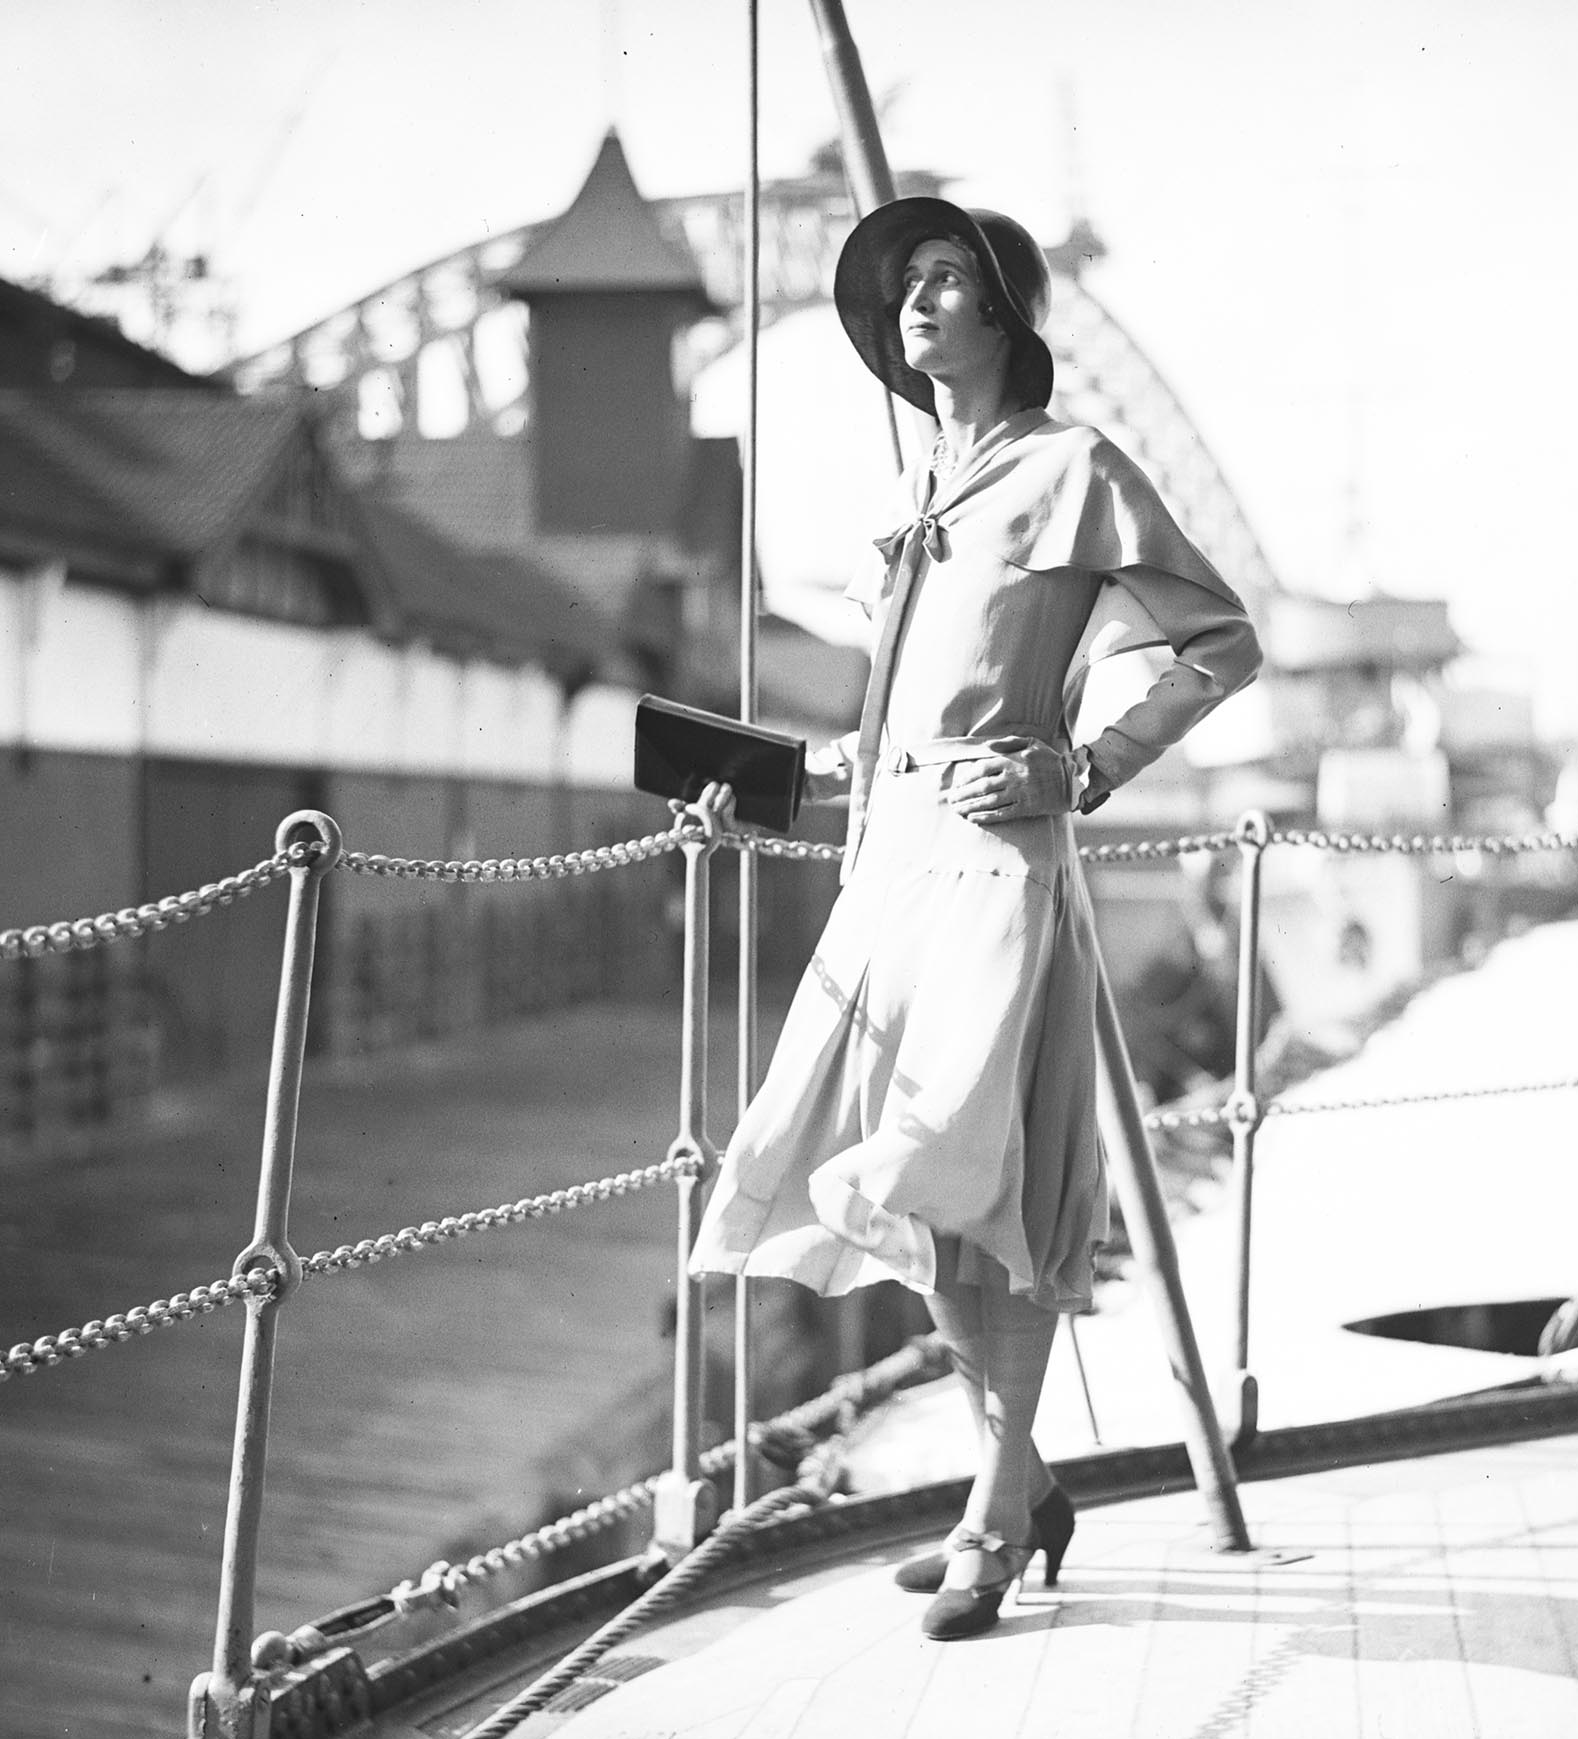 Designer and socialite Hera Roberts on the deck of the HNLMS JAVA, Sydney  Harbour, 1930